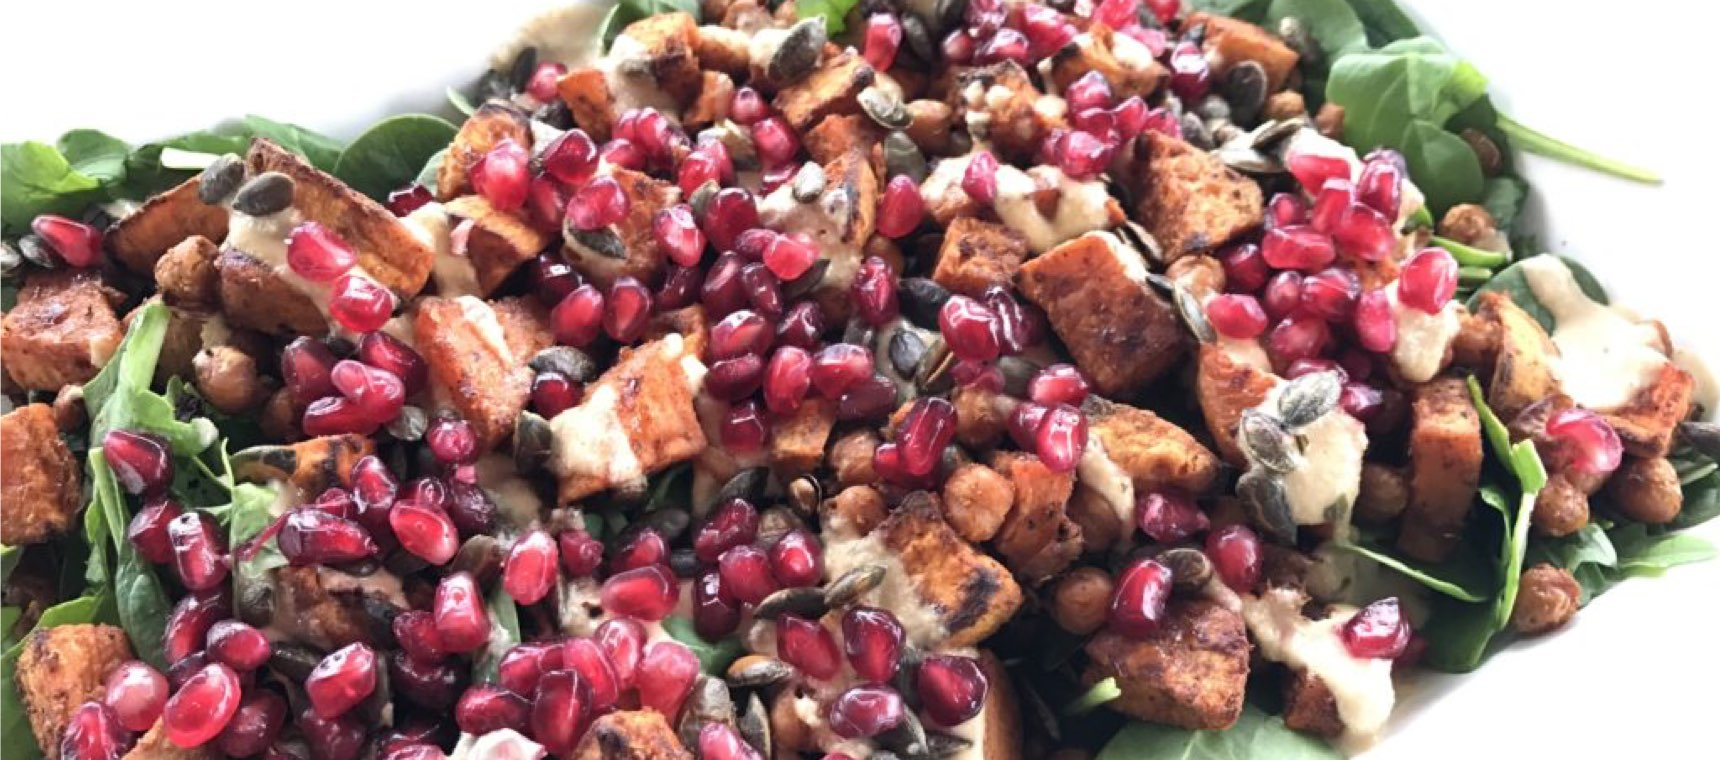 Gourmet Moroccan Salad with Pomegranate